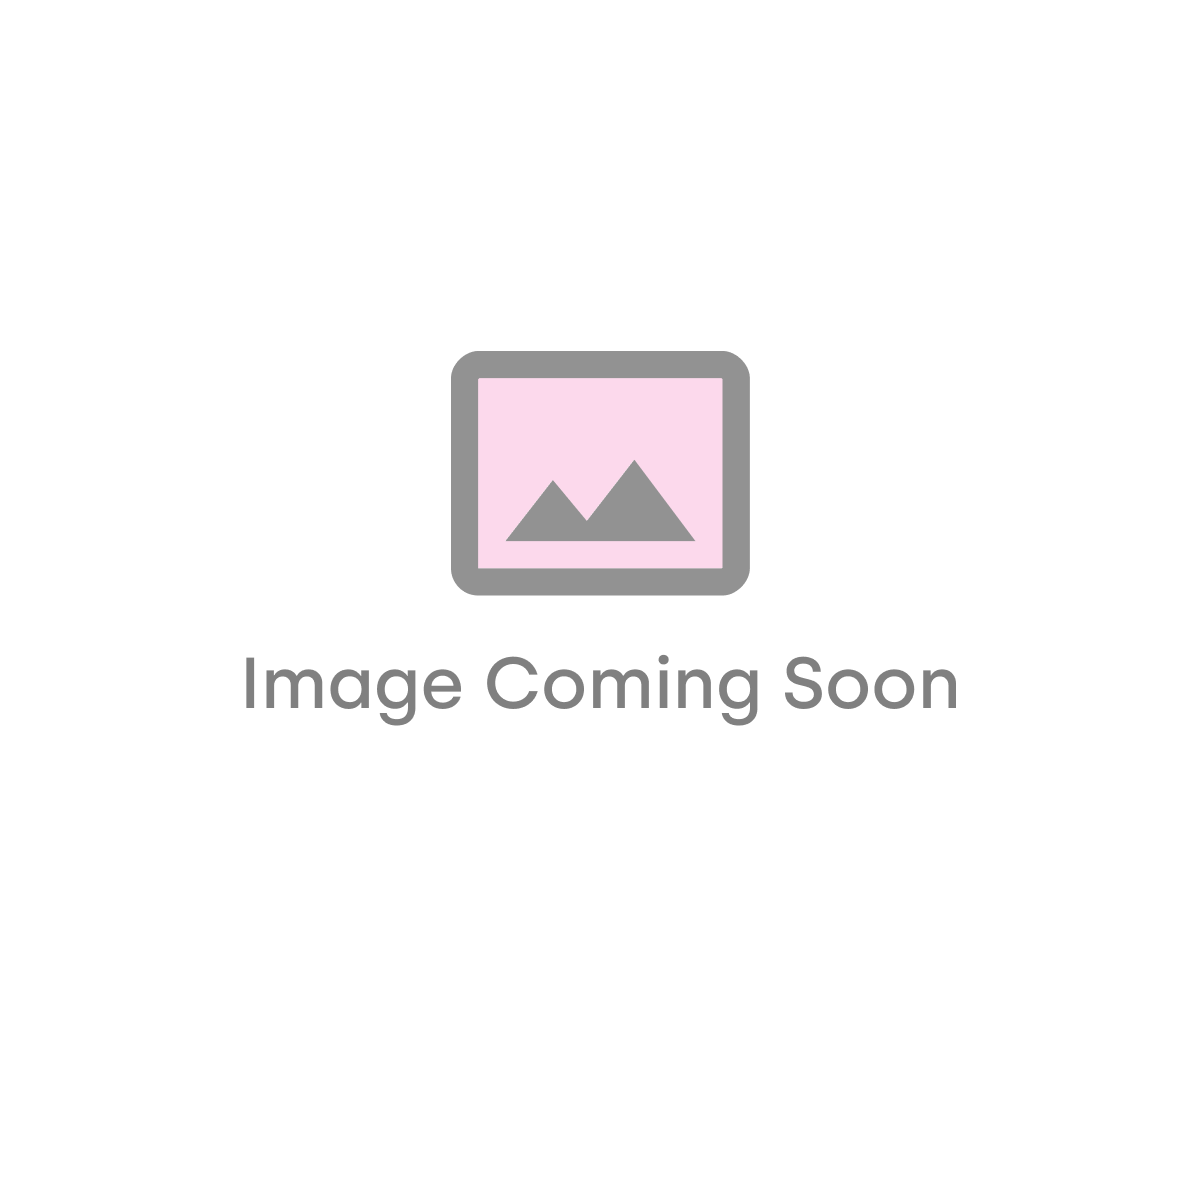 Eliseo Ricci Instant Boiling Water Kitchen Tap - 11099